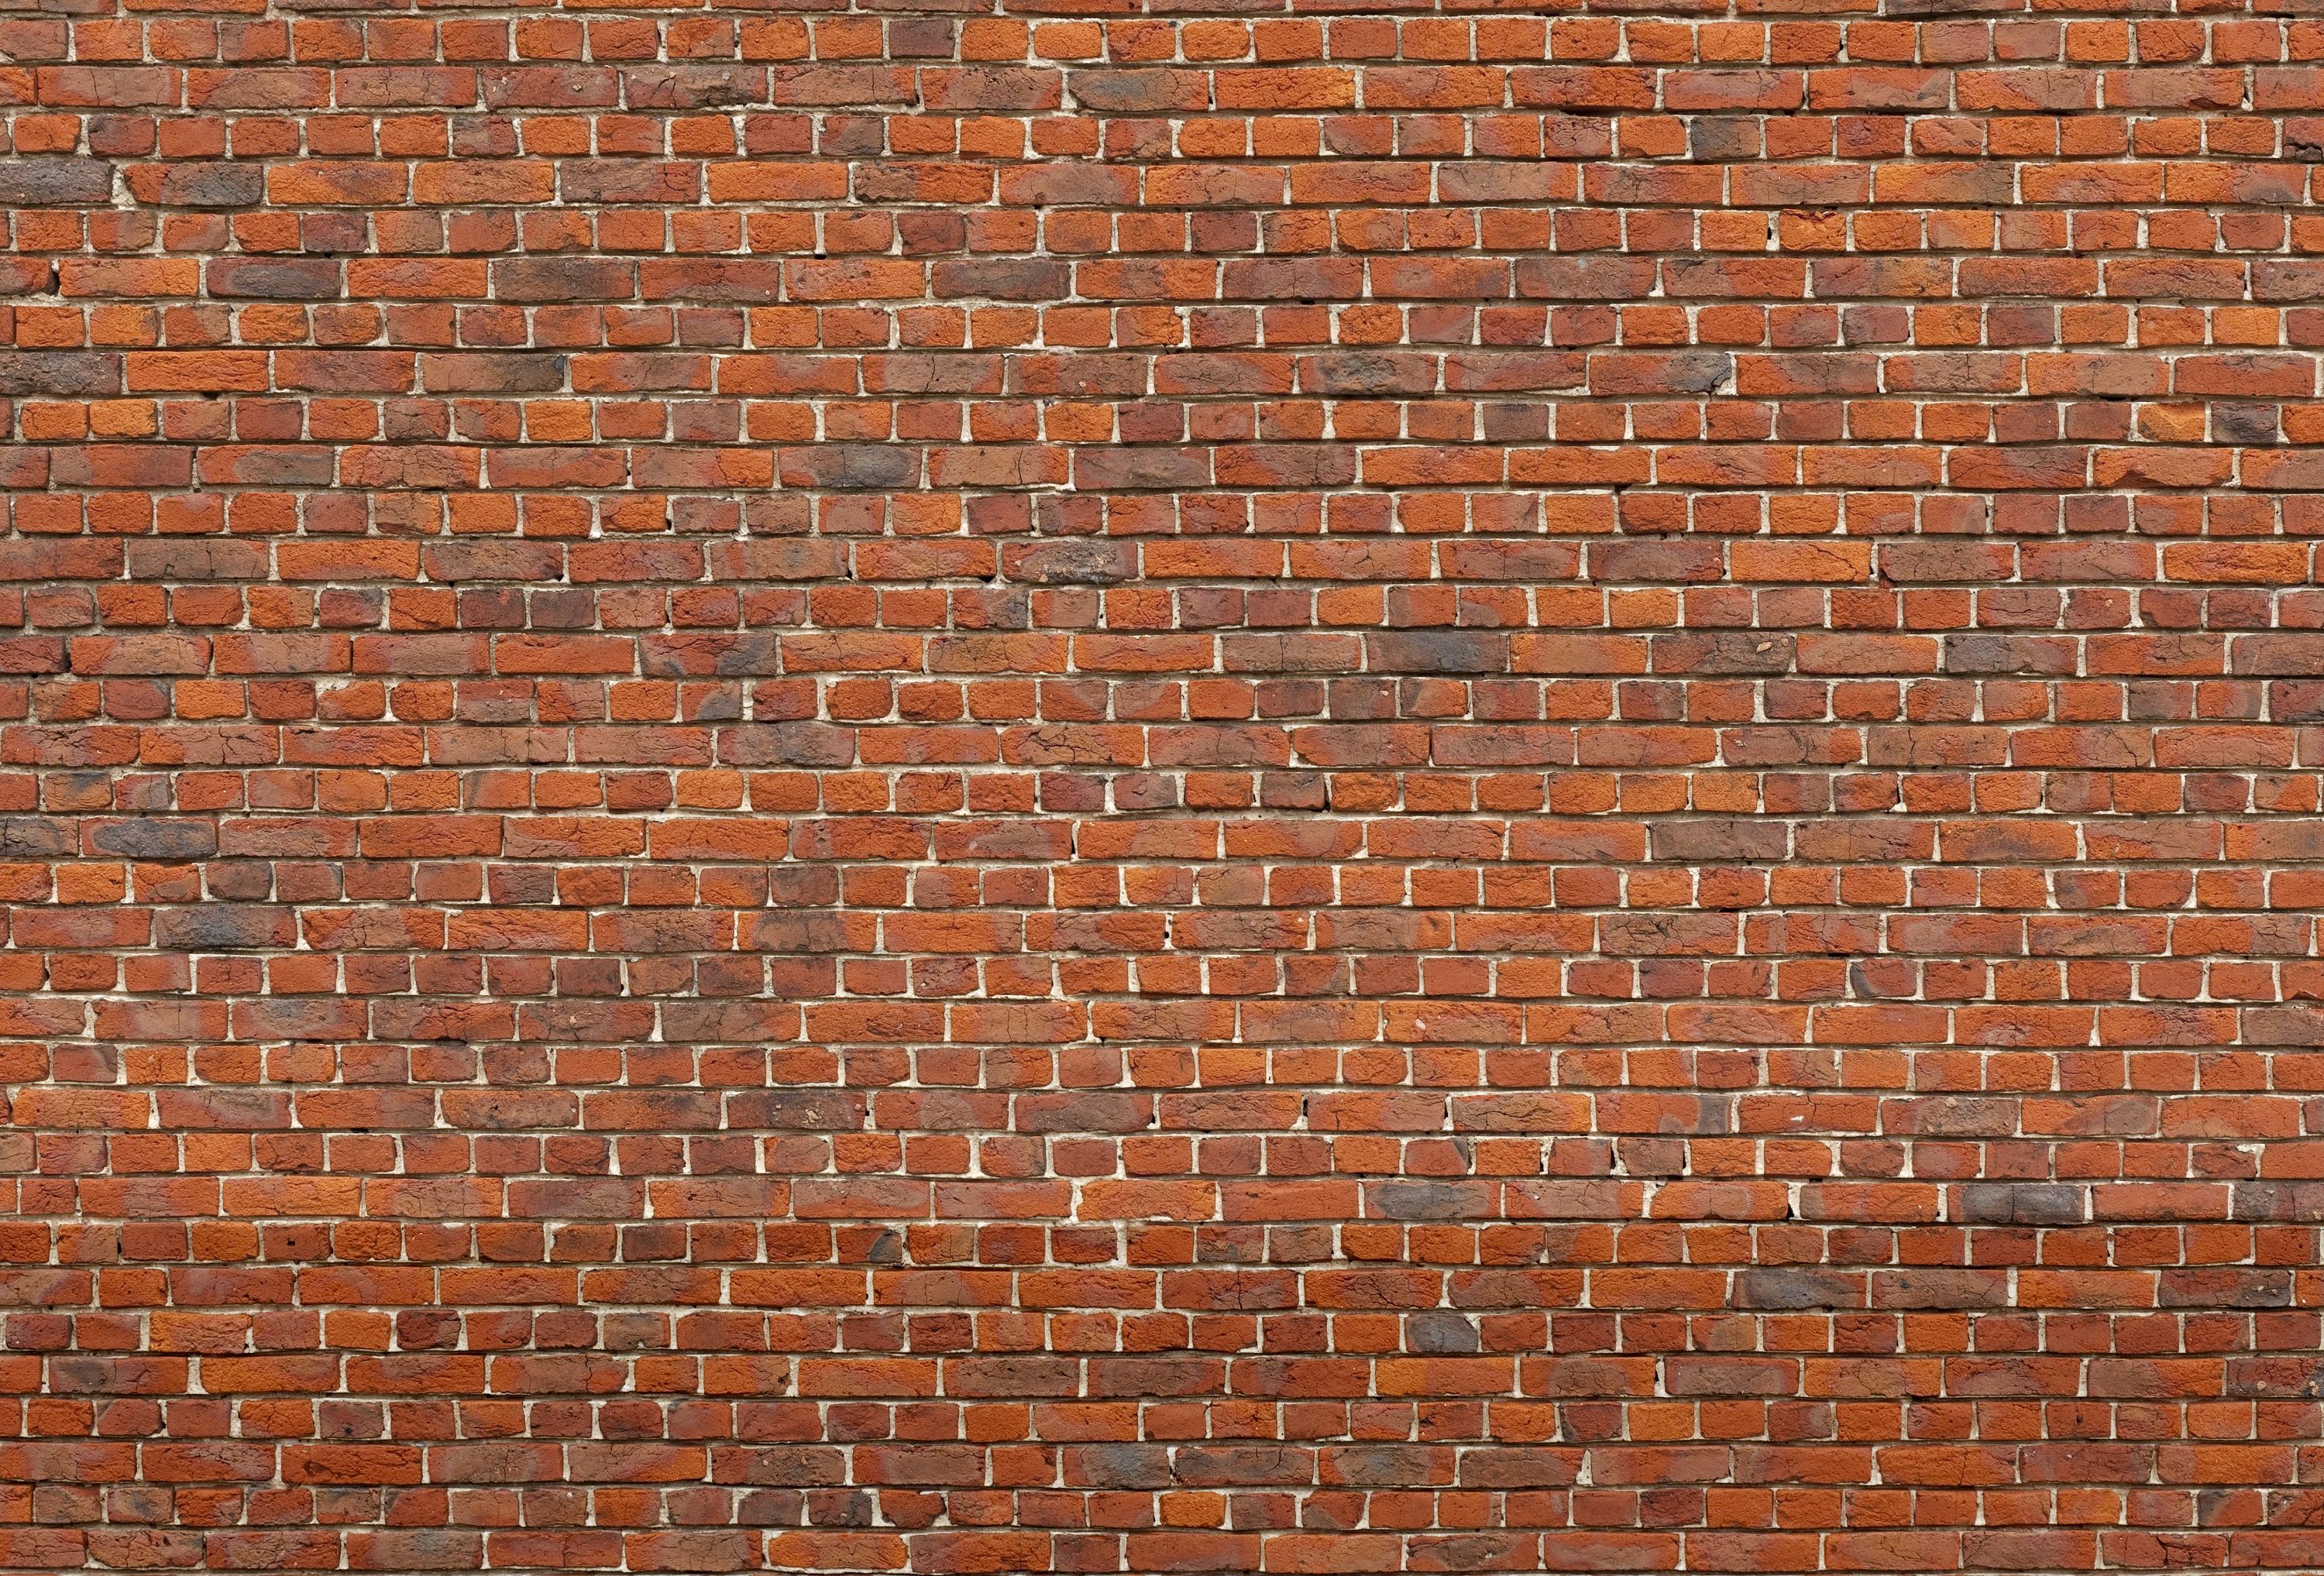 Brick Wall Design Brick Wall Texture Download Photo Image Bricks Brick